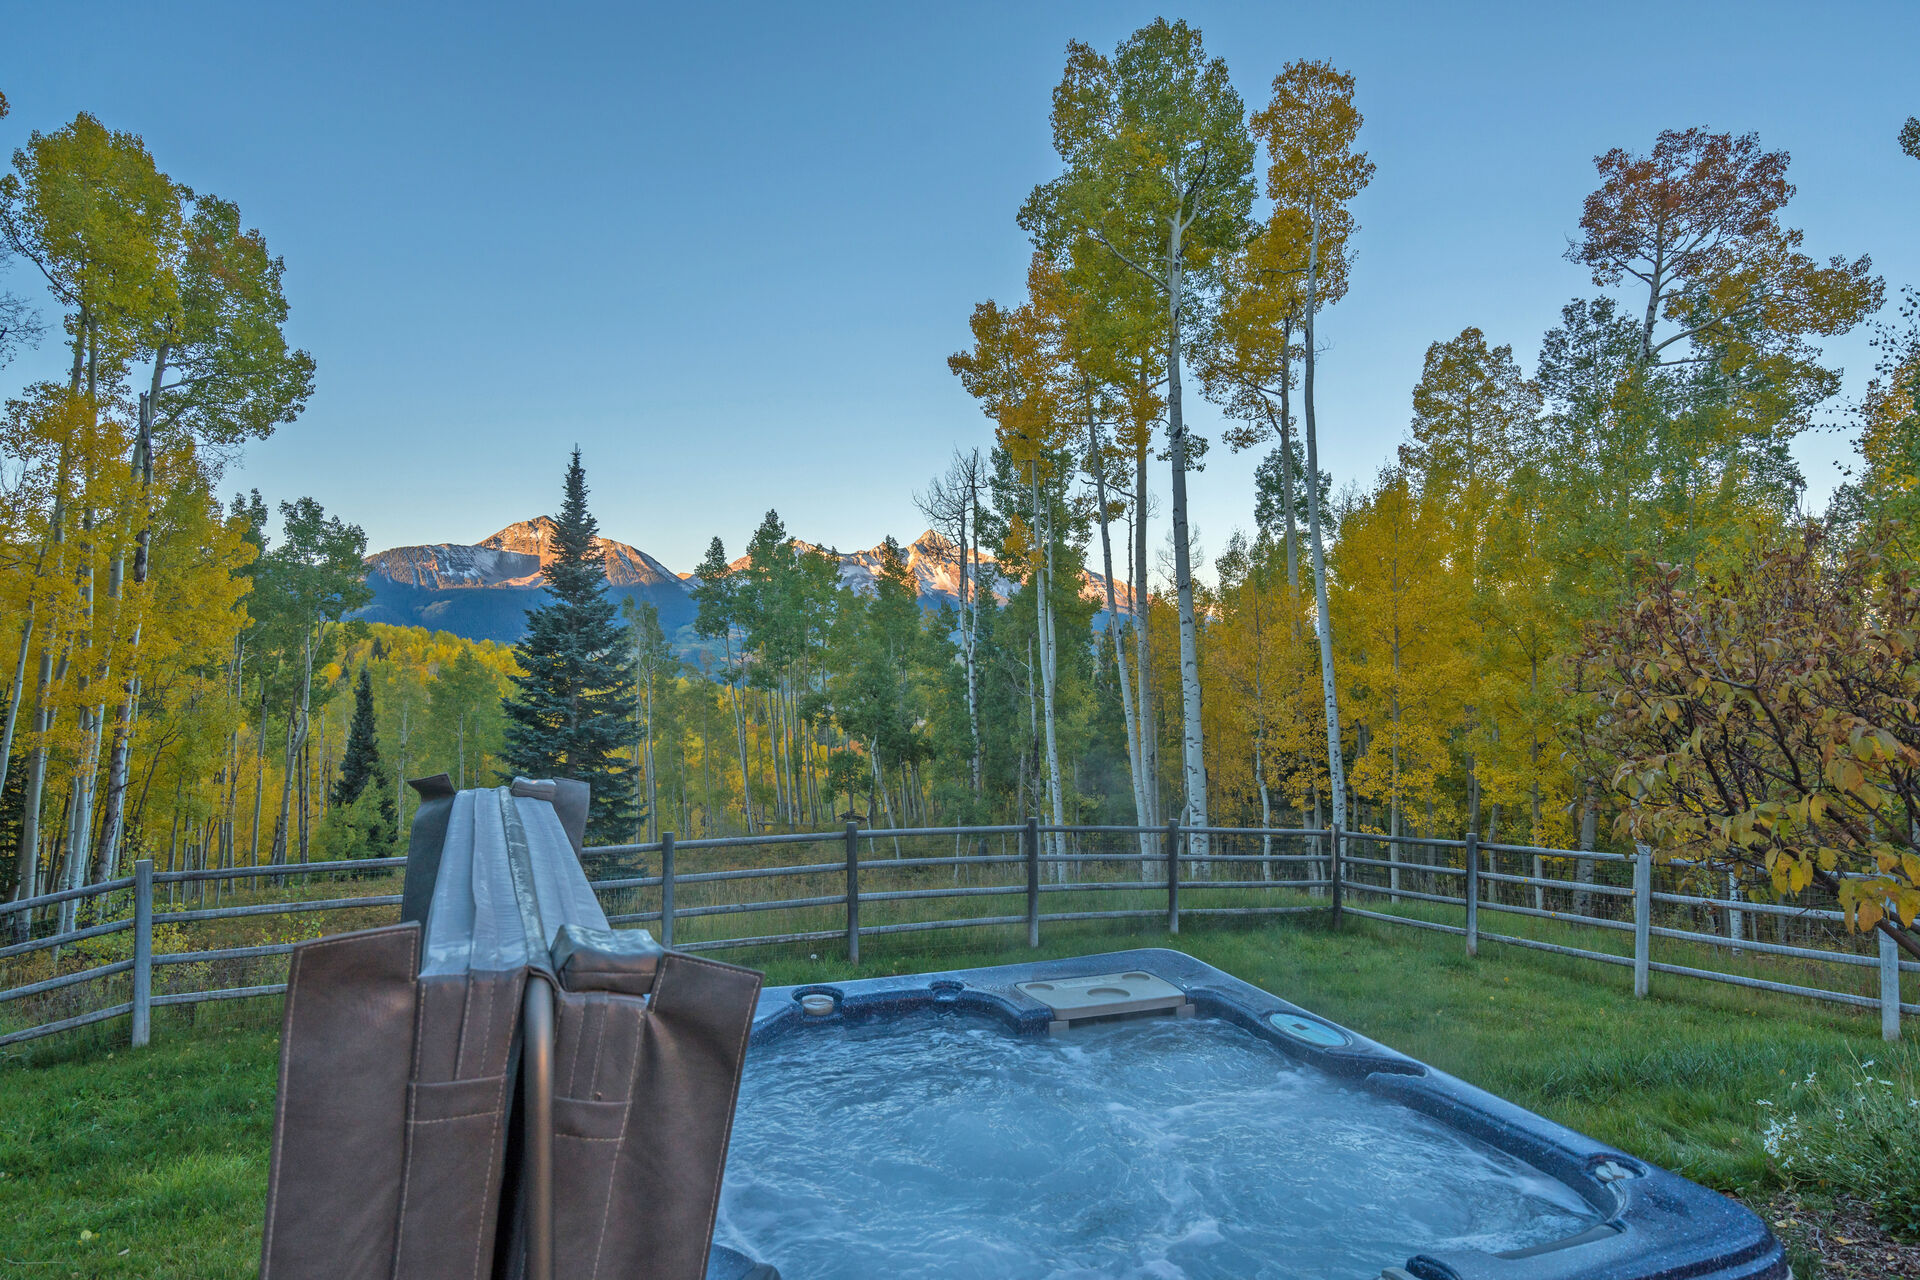 Views of the Mountains and Forest from the Hot Tub at Ski Ranches Cabin